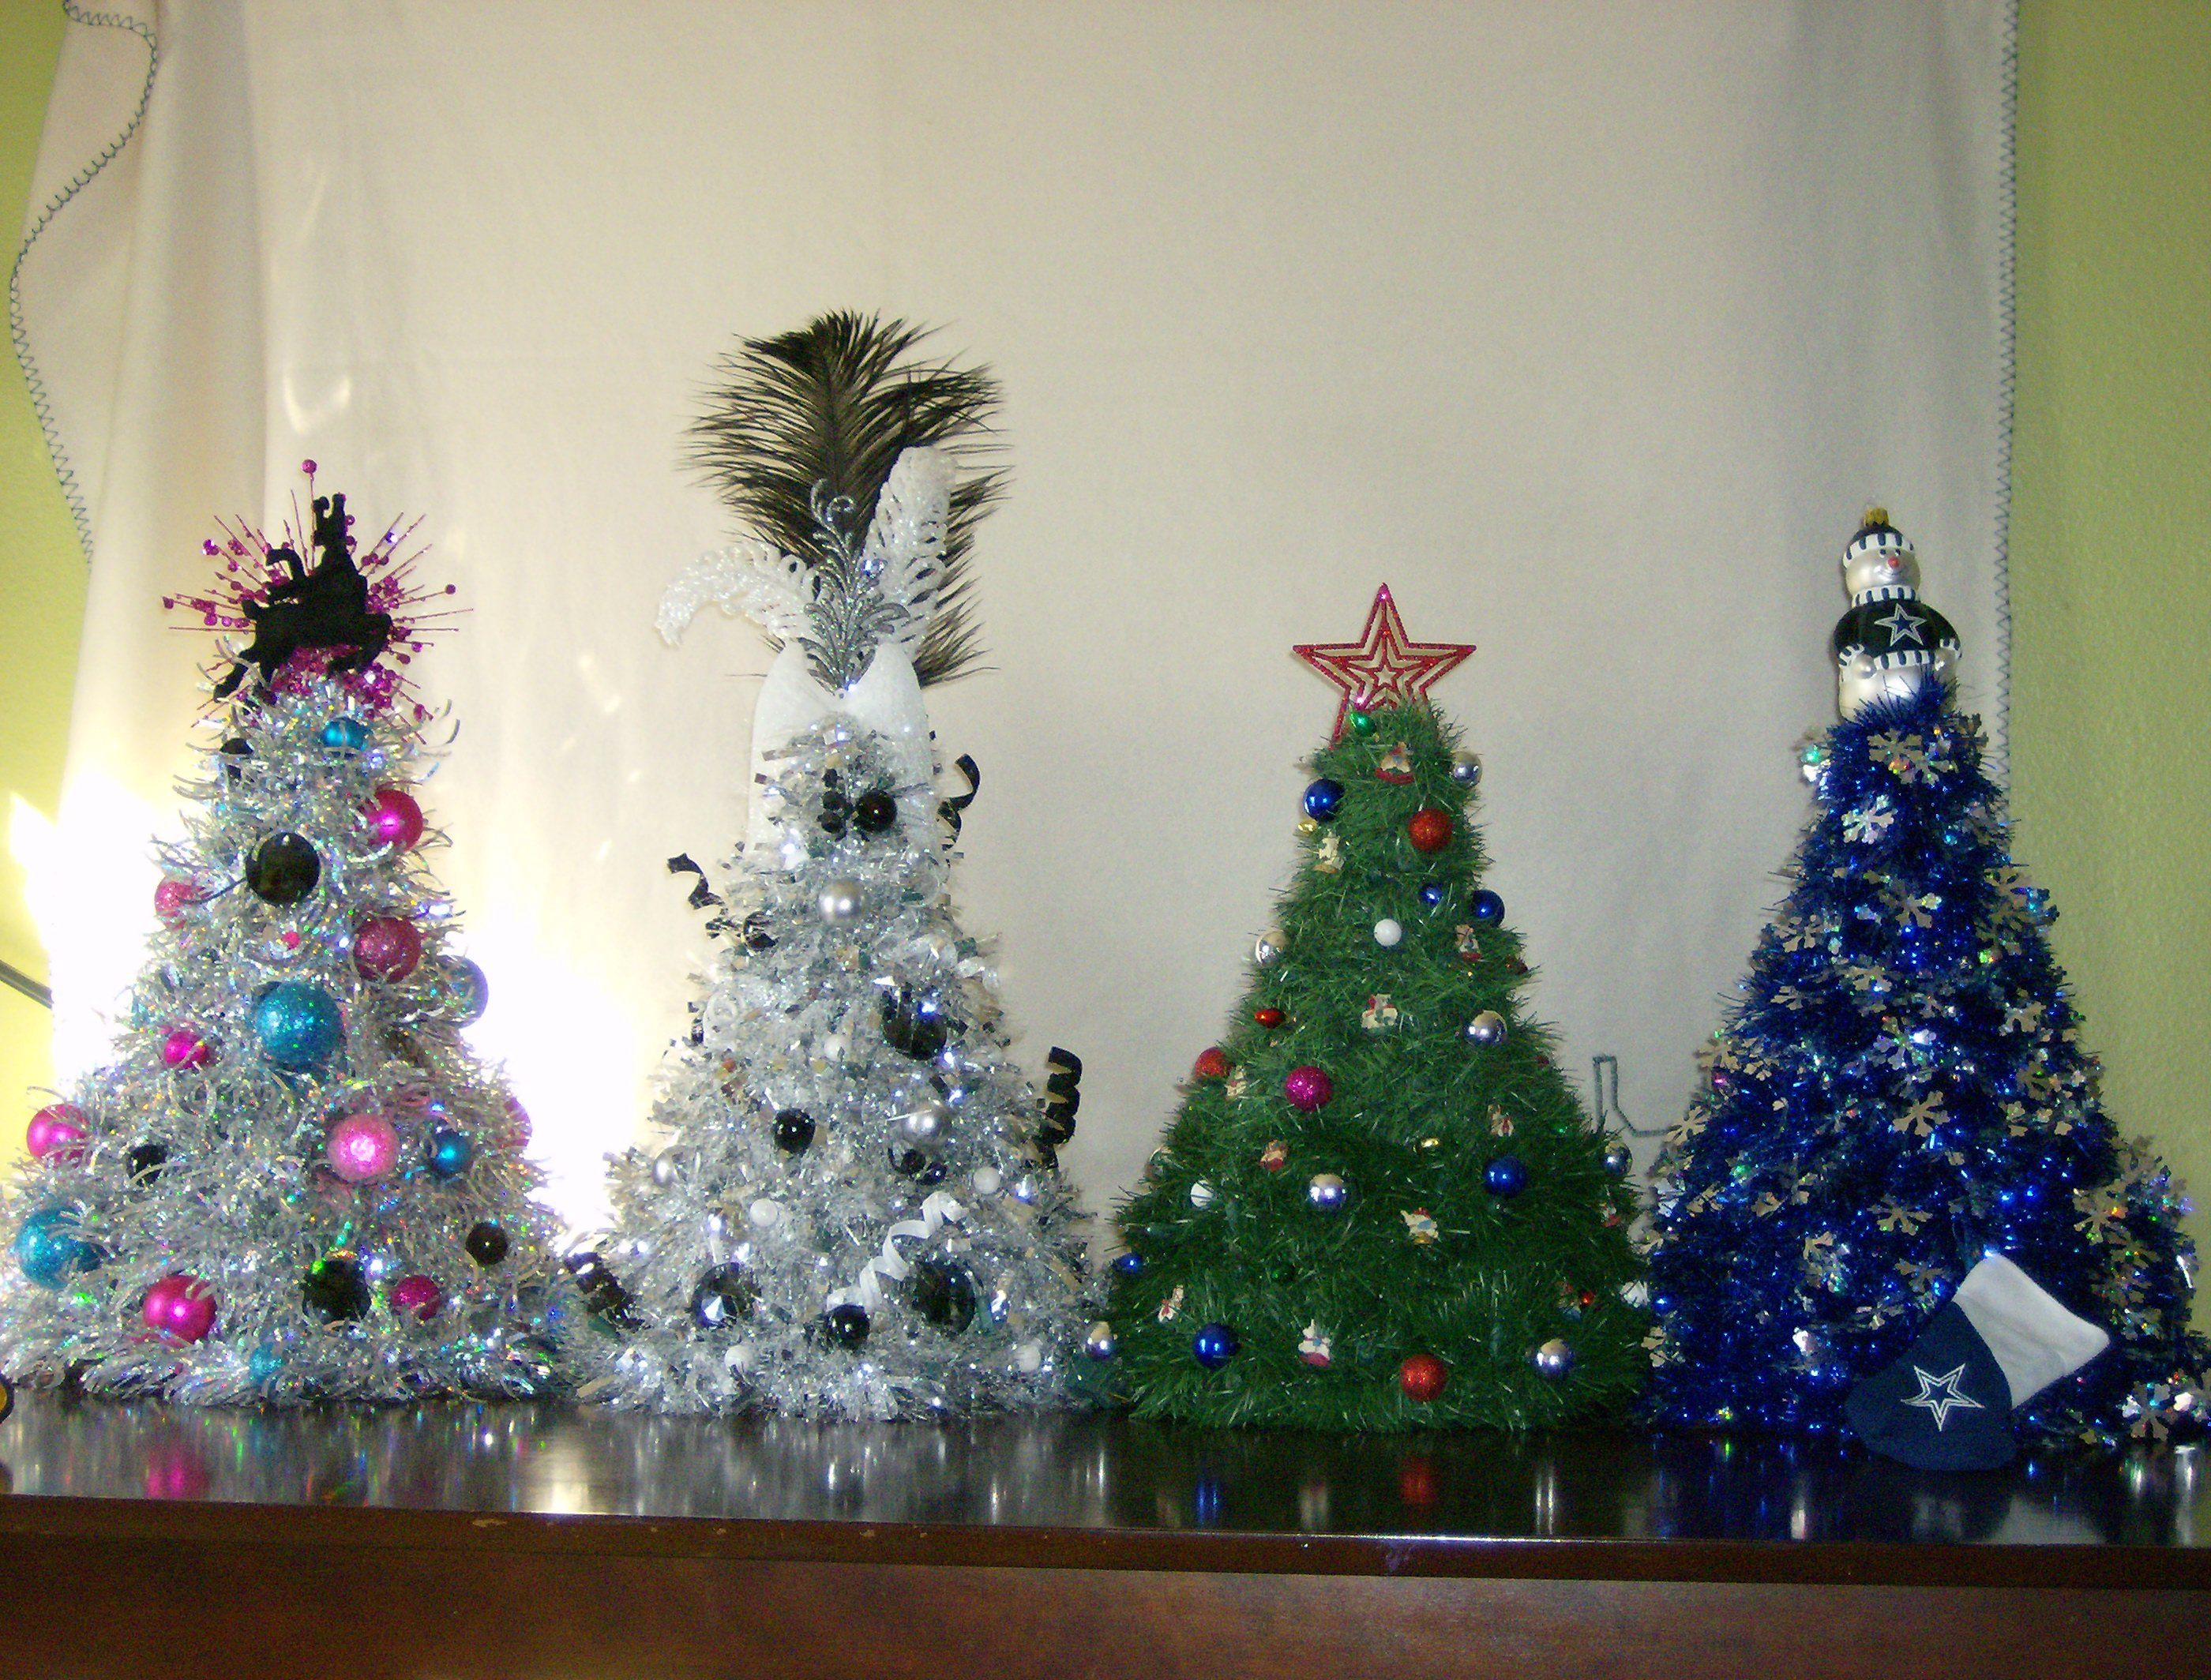 Here Is A Web Site With Instructions On How To Make Your Own Cloths Hanger Tree Http Www Hanger Christmas Tree Diy Christmas Tree Christmas Tree Crafts